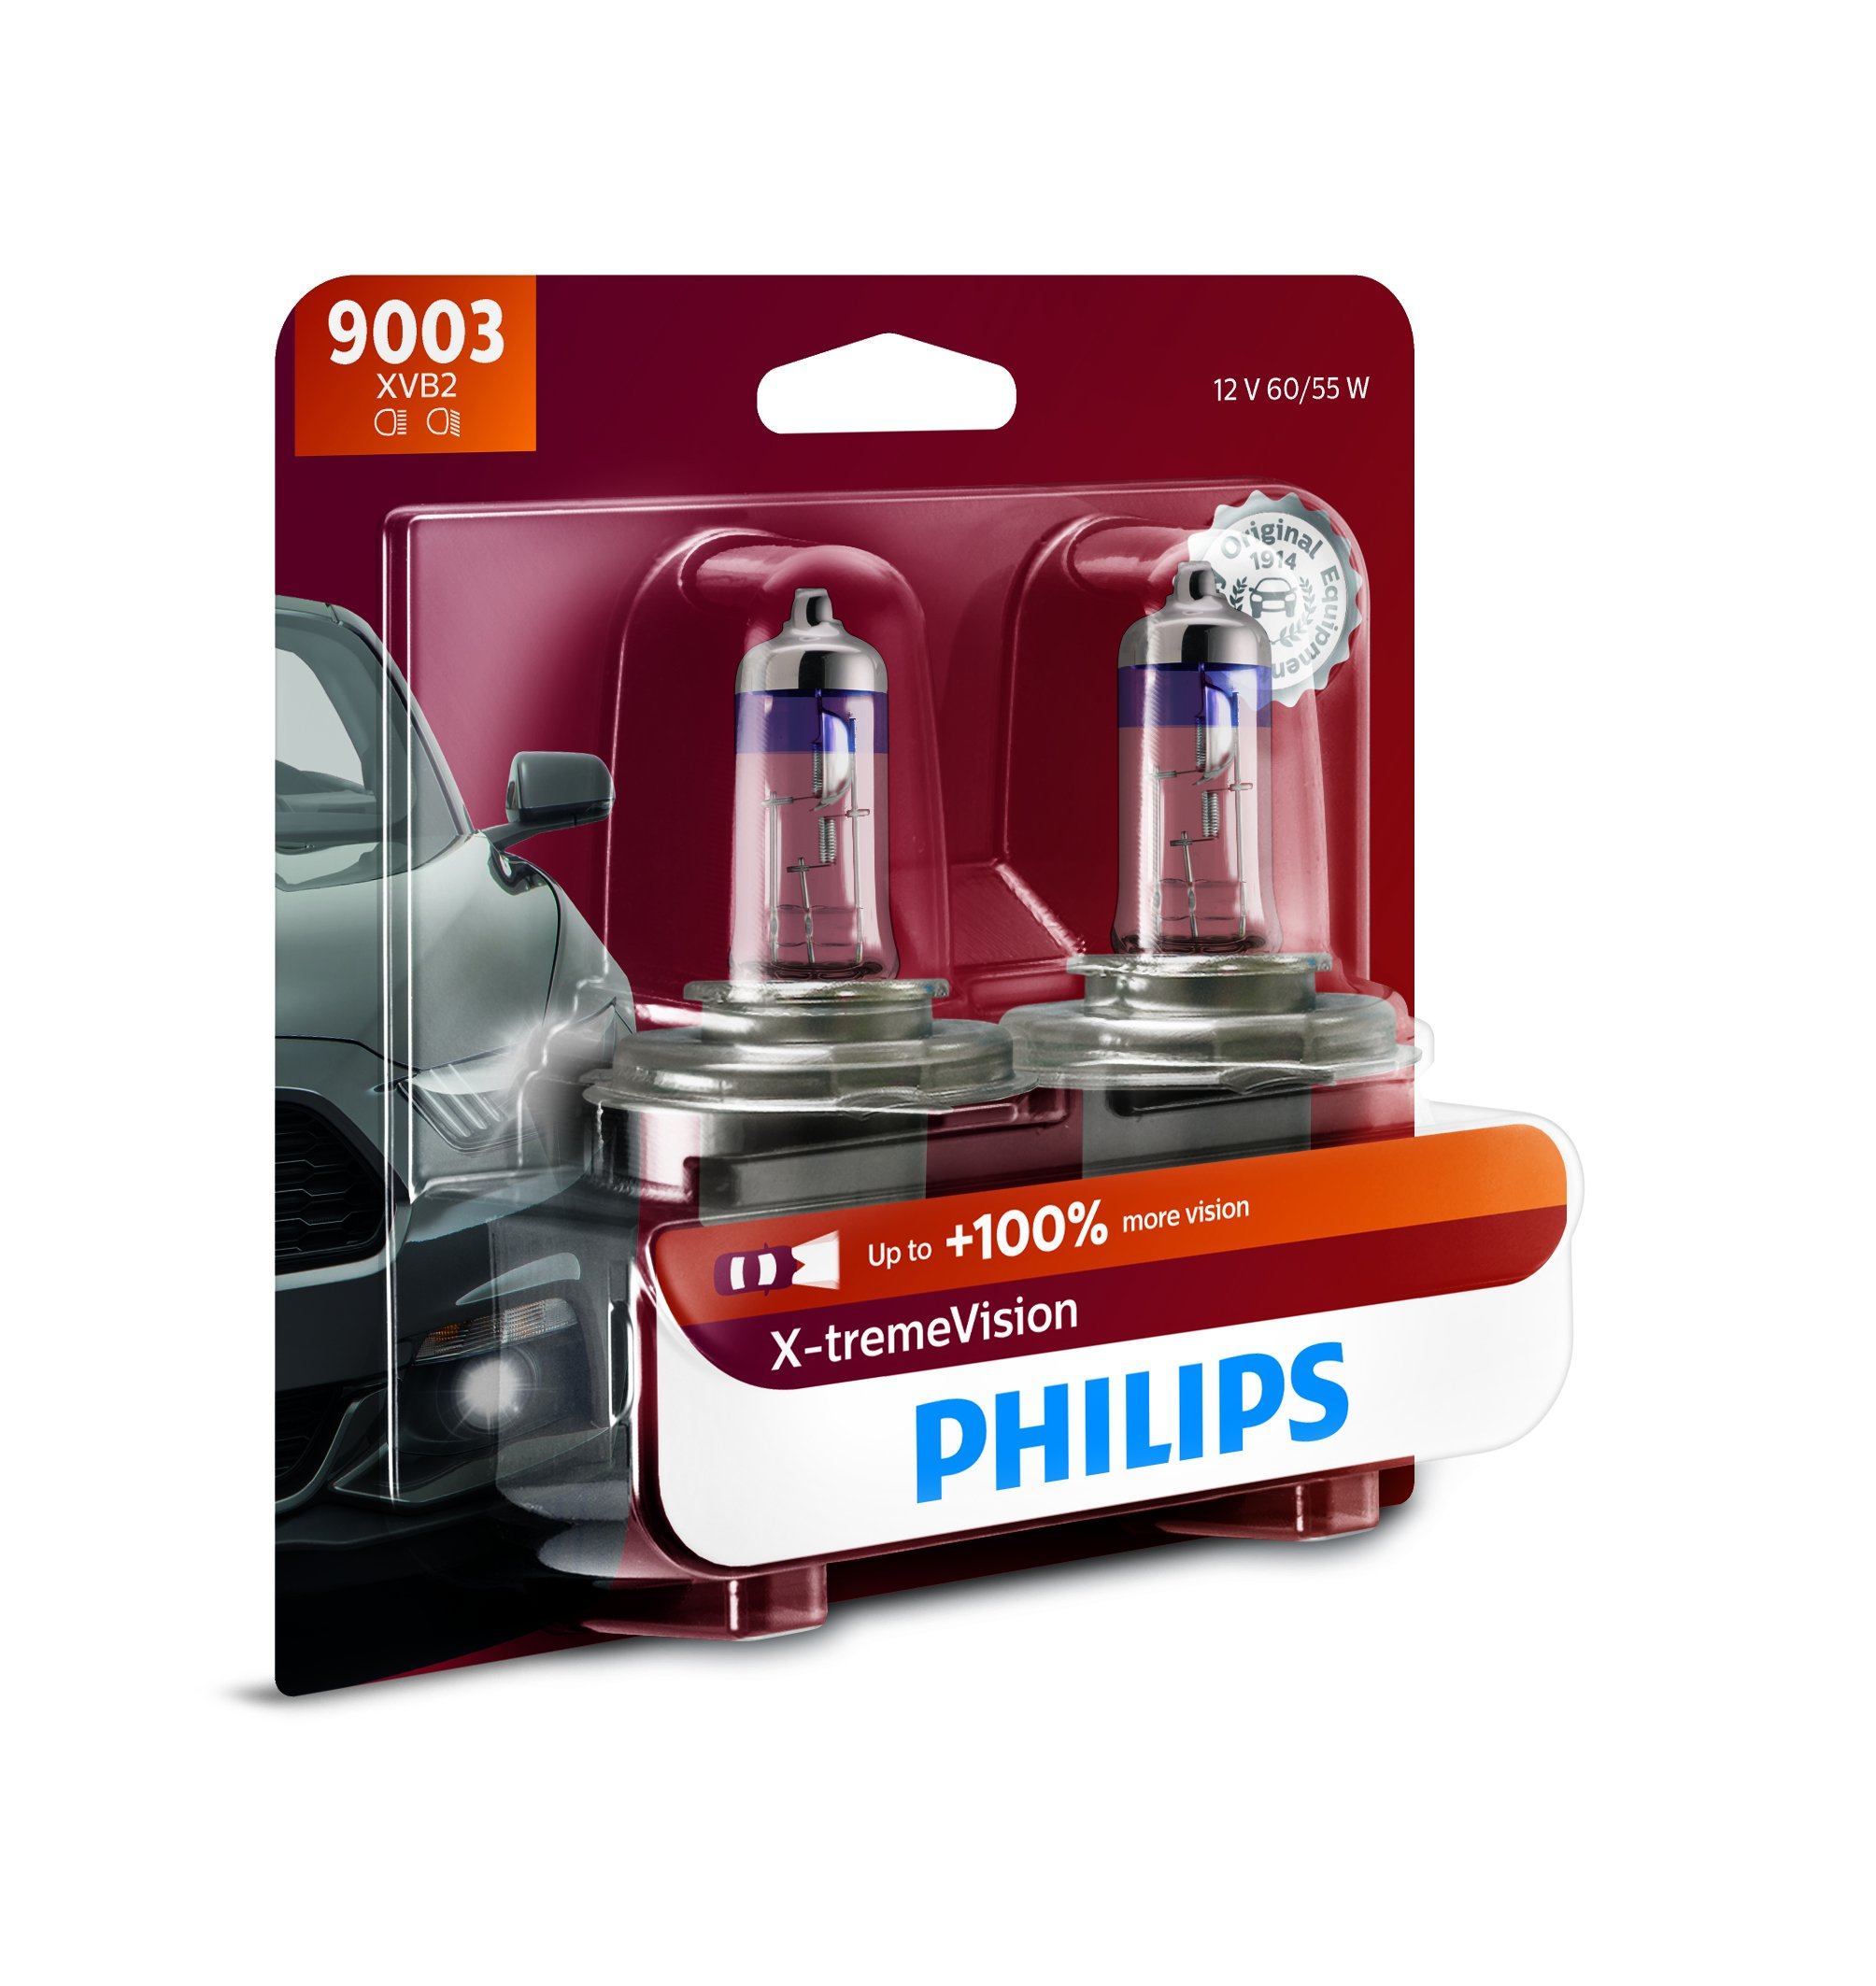 Philips 9003 X-tremeVision Upgrade Headlight Bulb with up to 100% More Vision, 2 Pack by PHILIPS